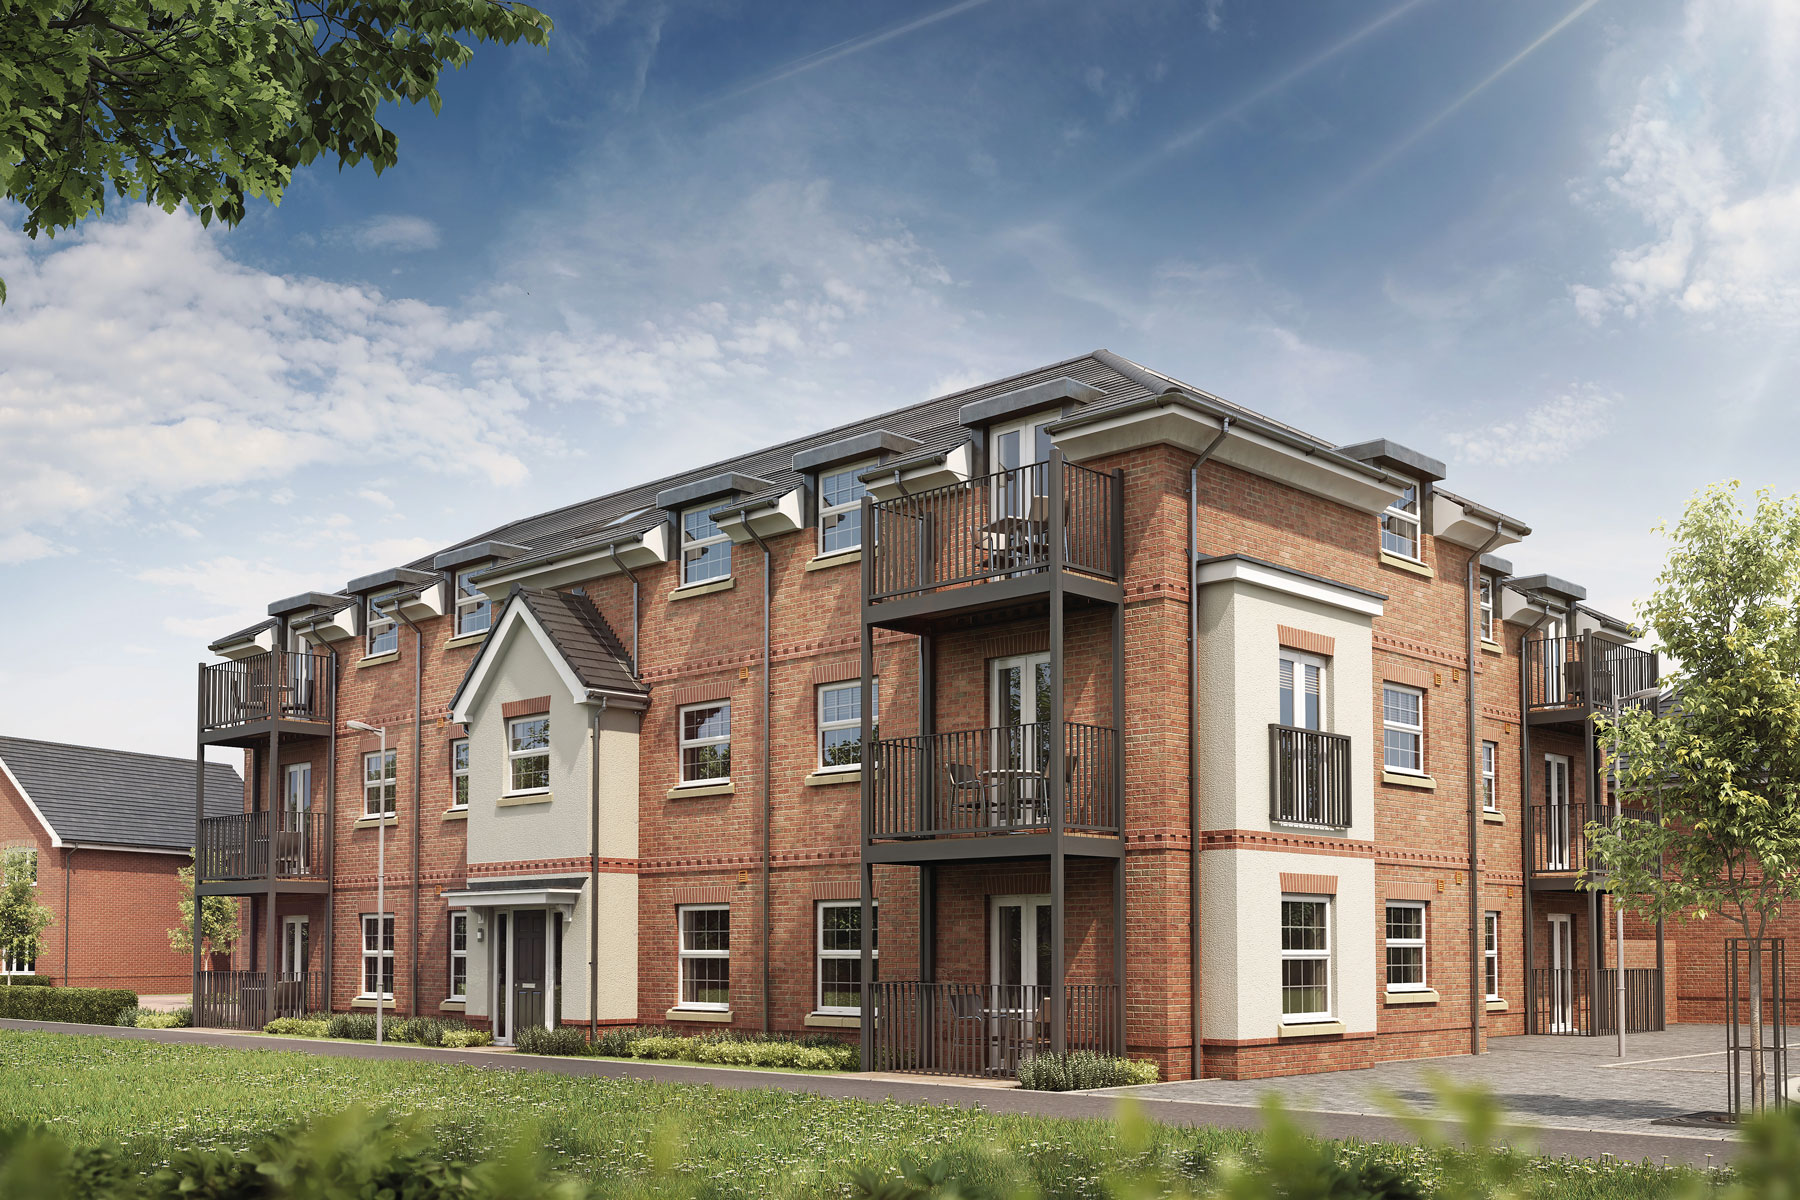 Artist's impression of Elm Court